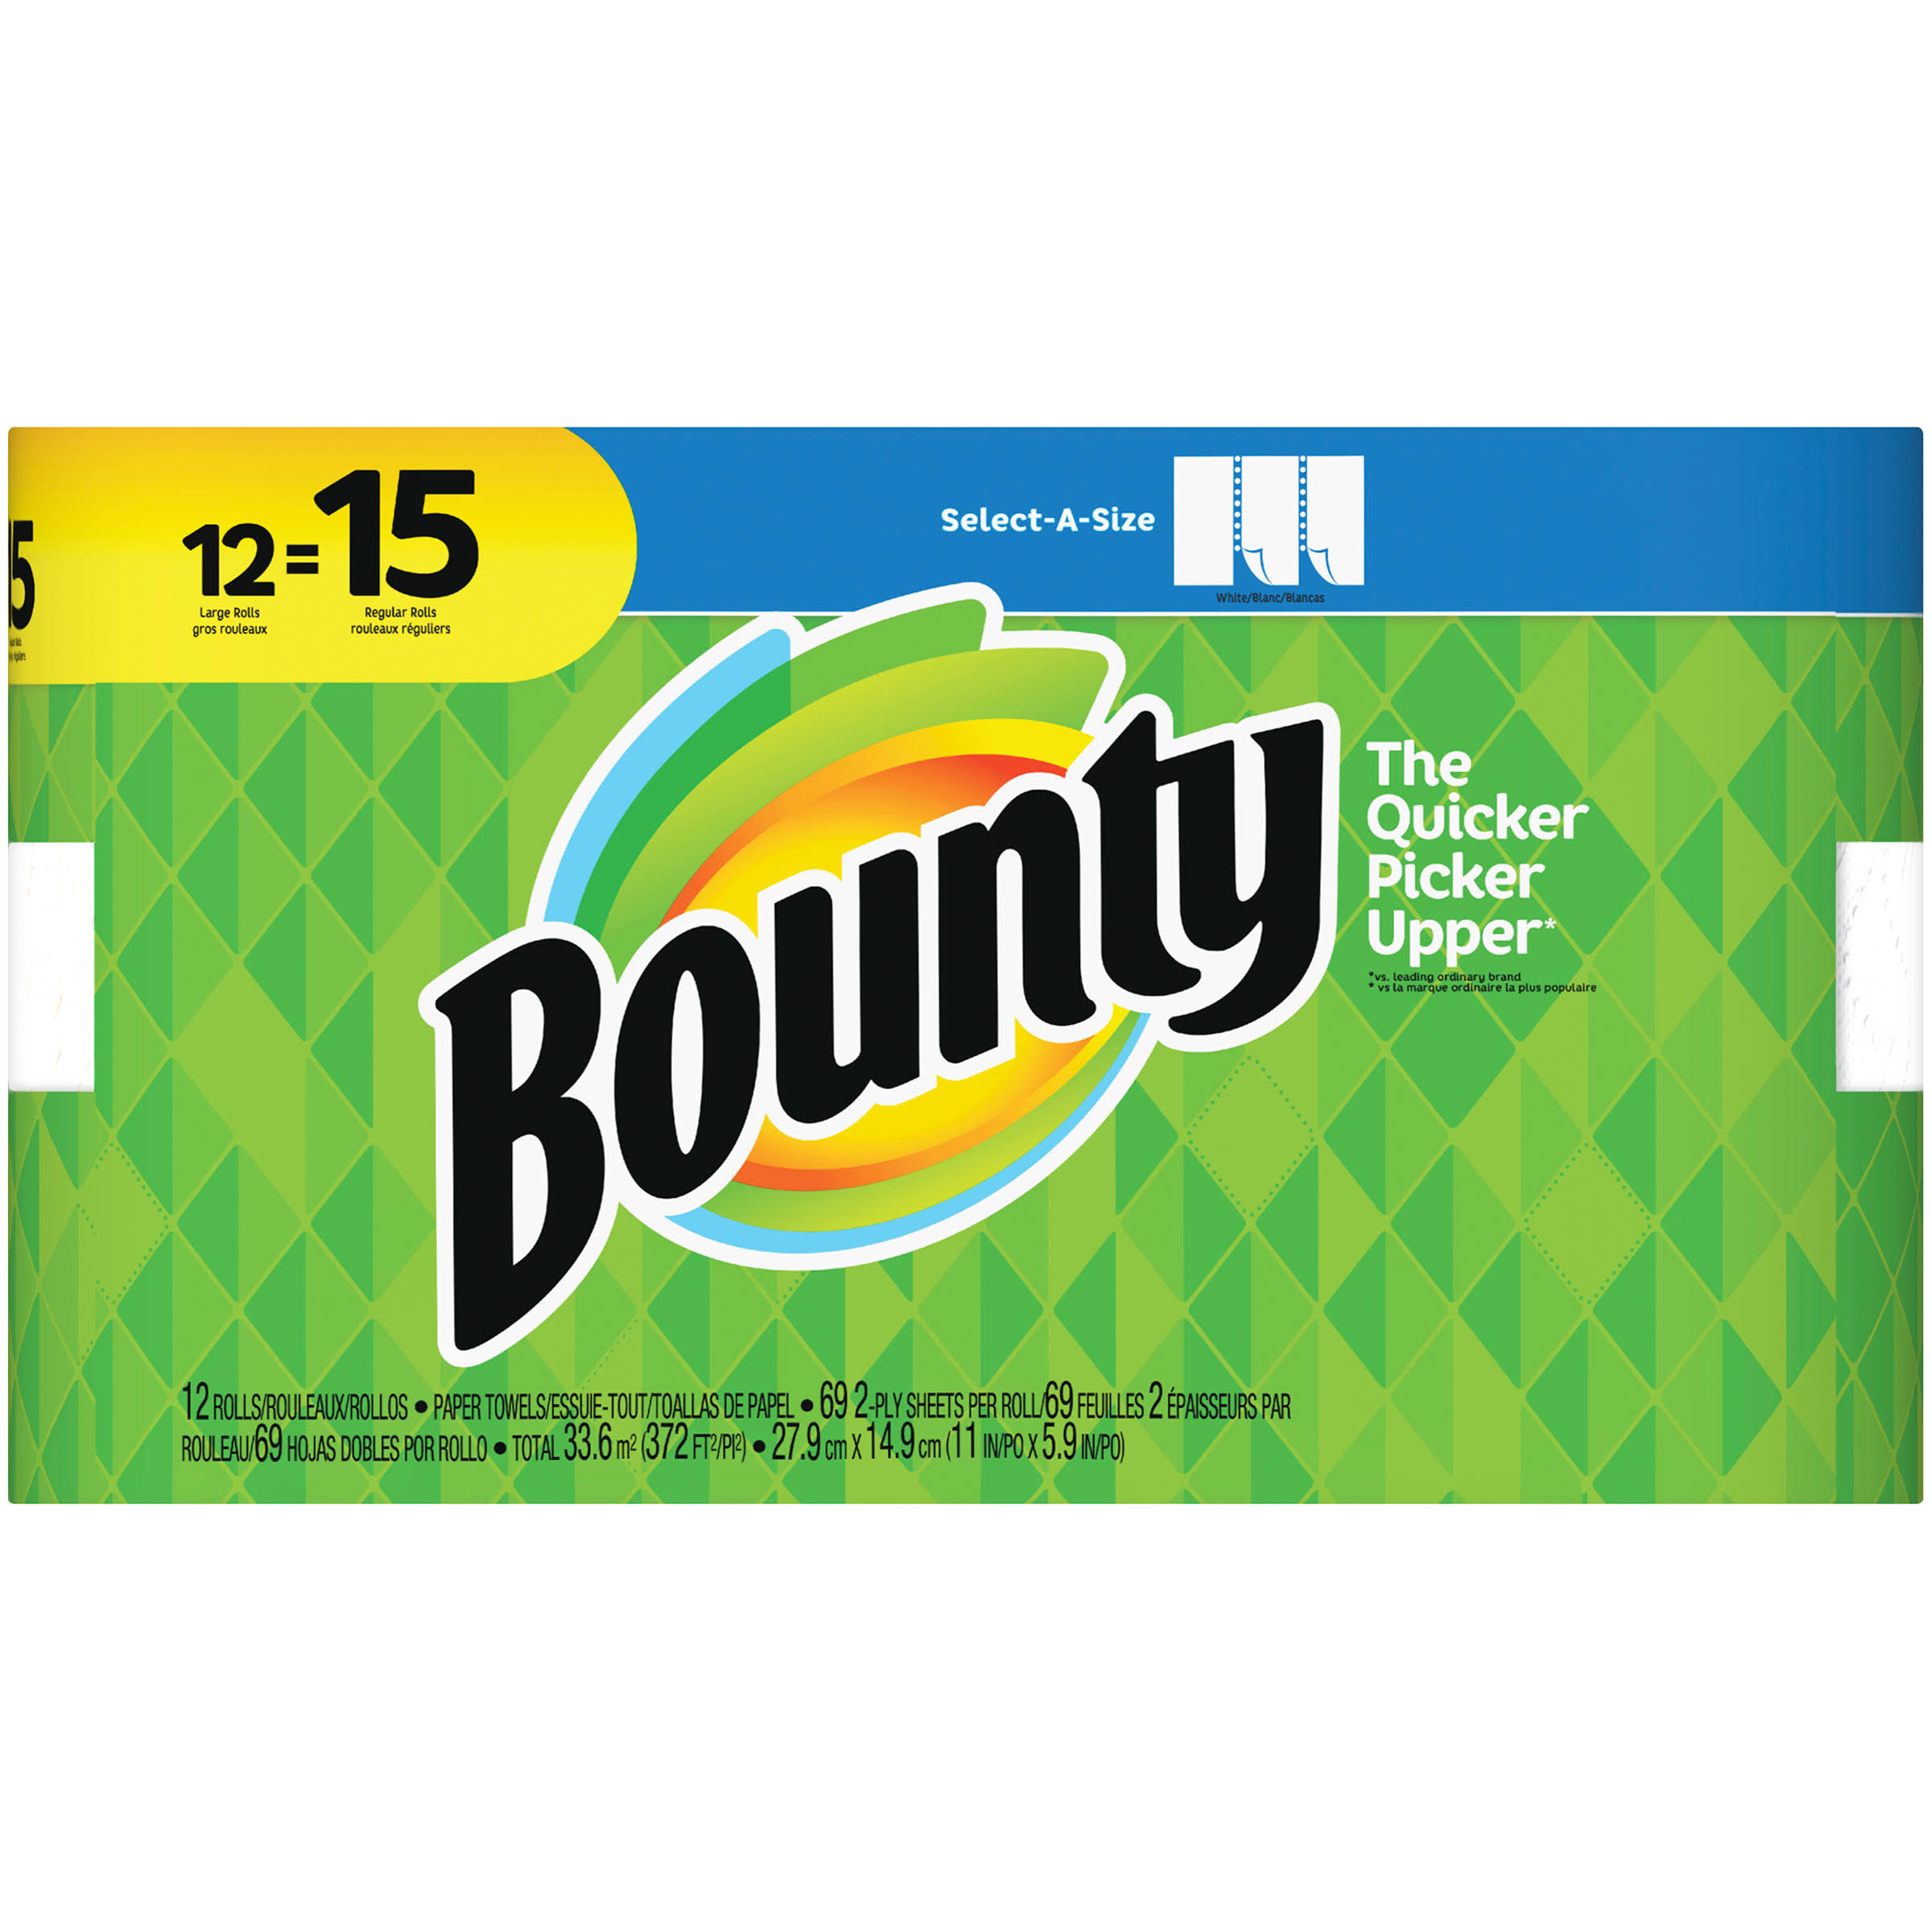 Procter & Gamble Bounty Paper Towel - Large Roll, 15pk